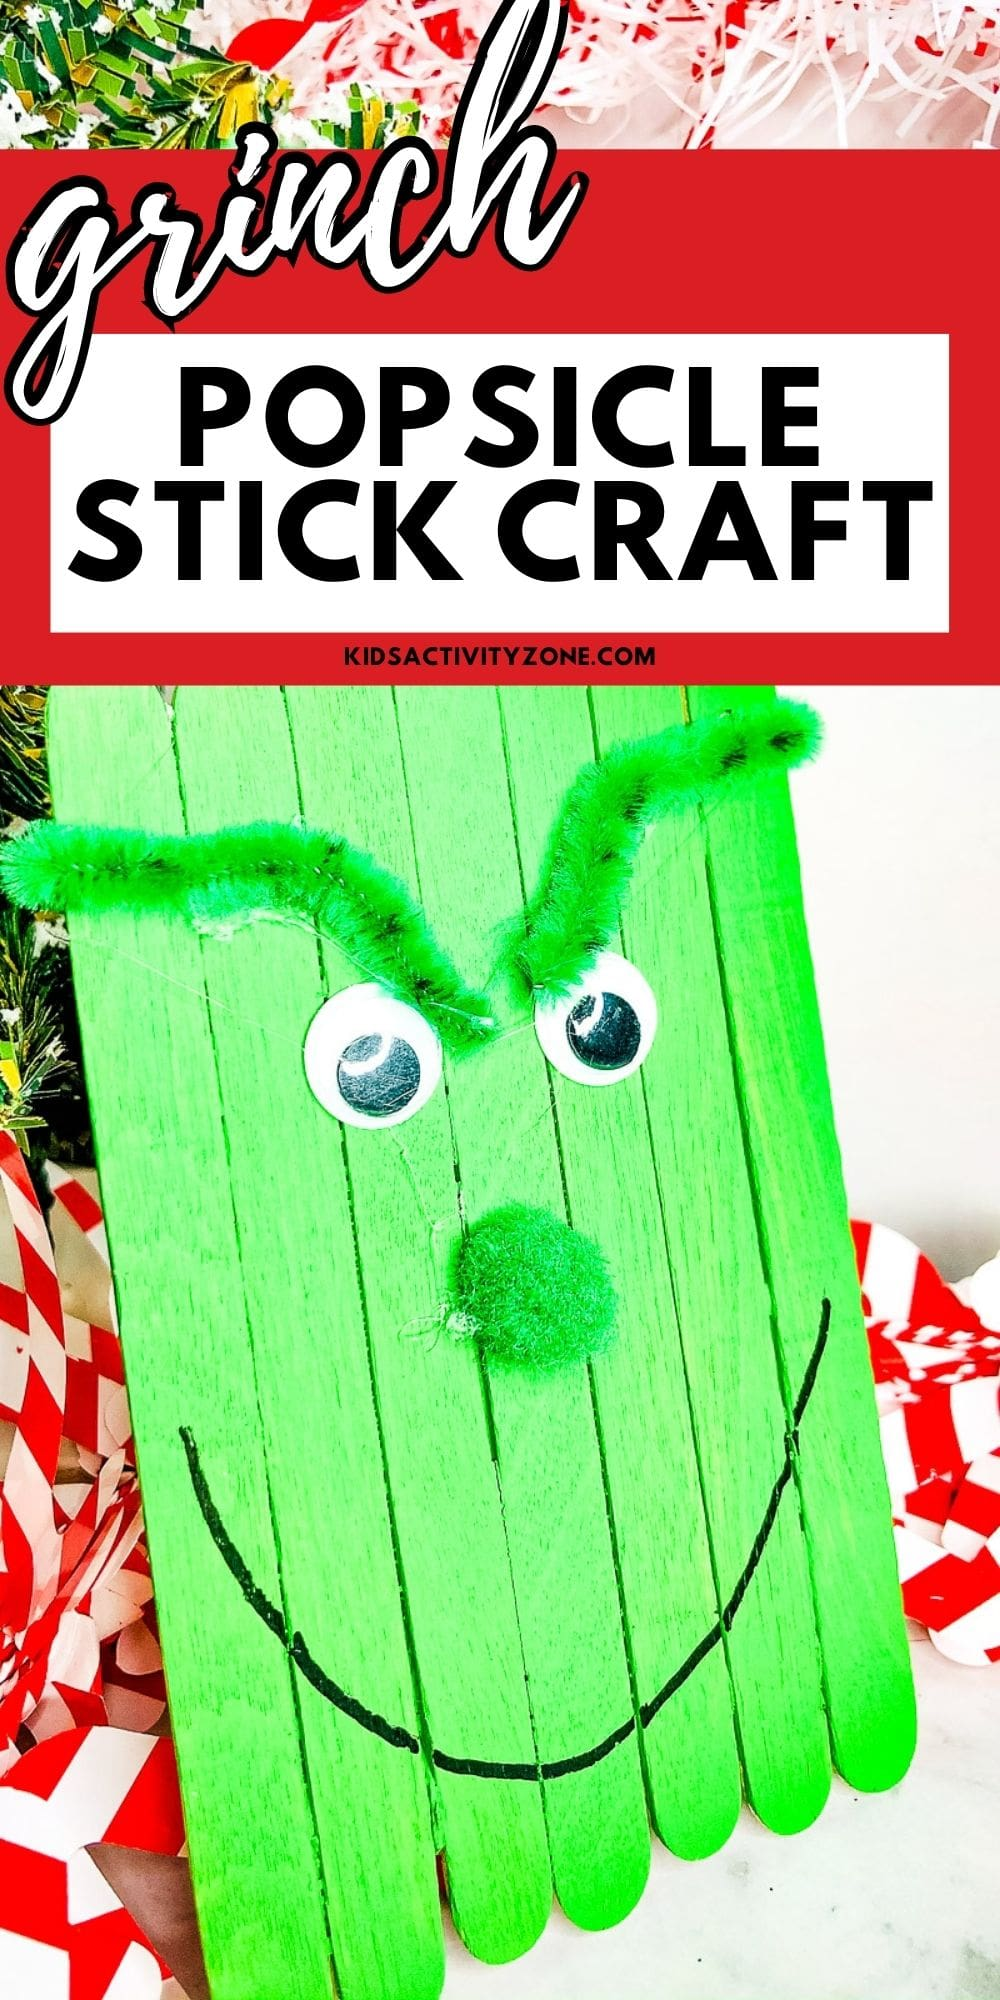 Grinch Popsicle Stick Craft is the perfect holiday craft to do at home, holiday parties or in the classroom. Pair it with the book or movie for more Grinch themed fun!